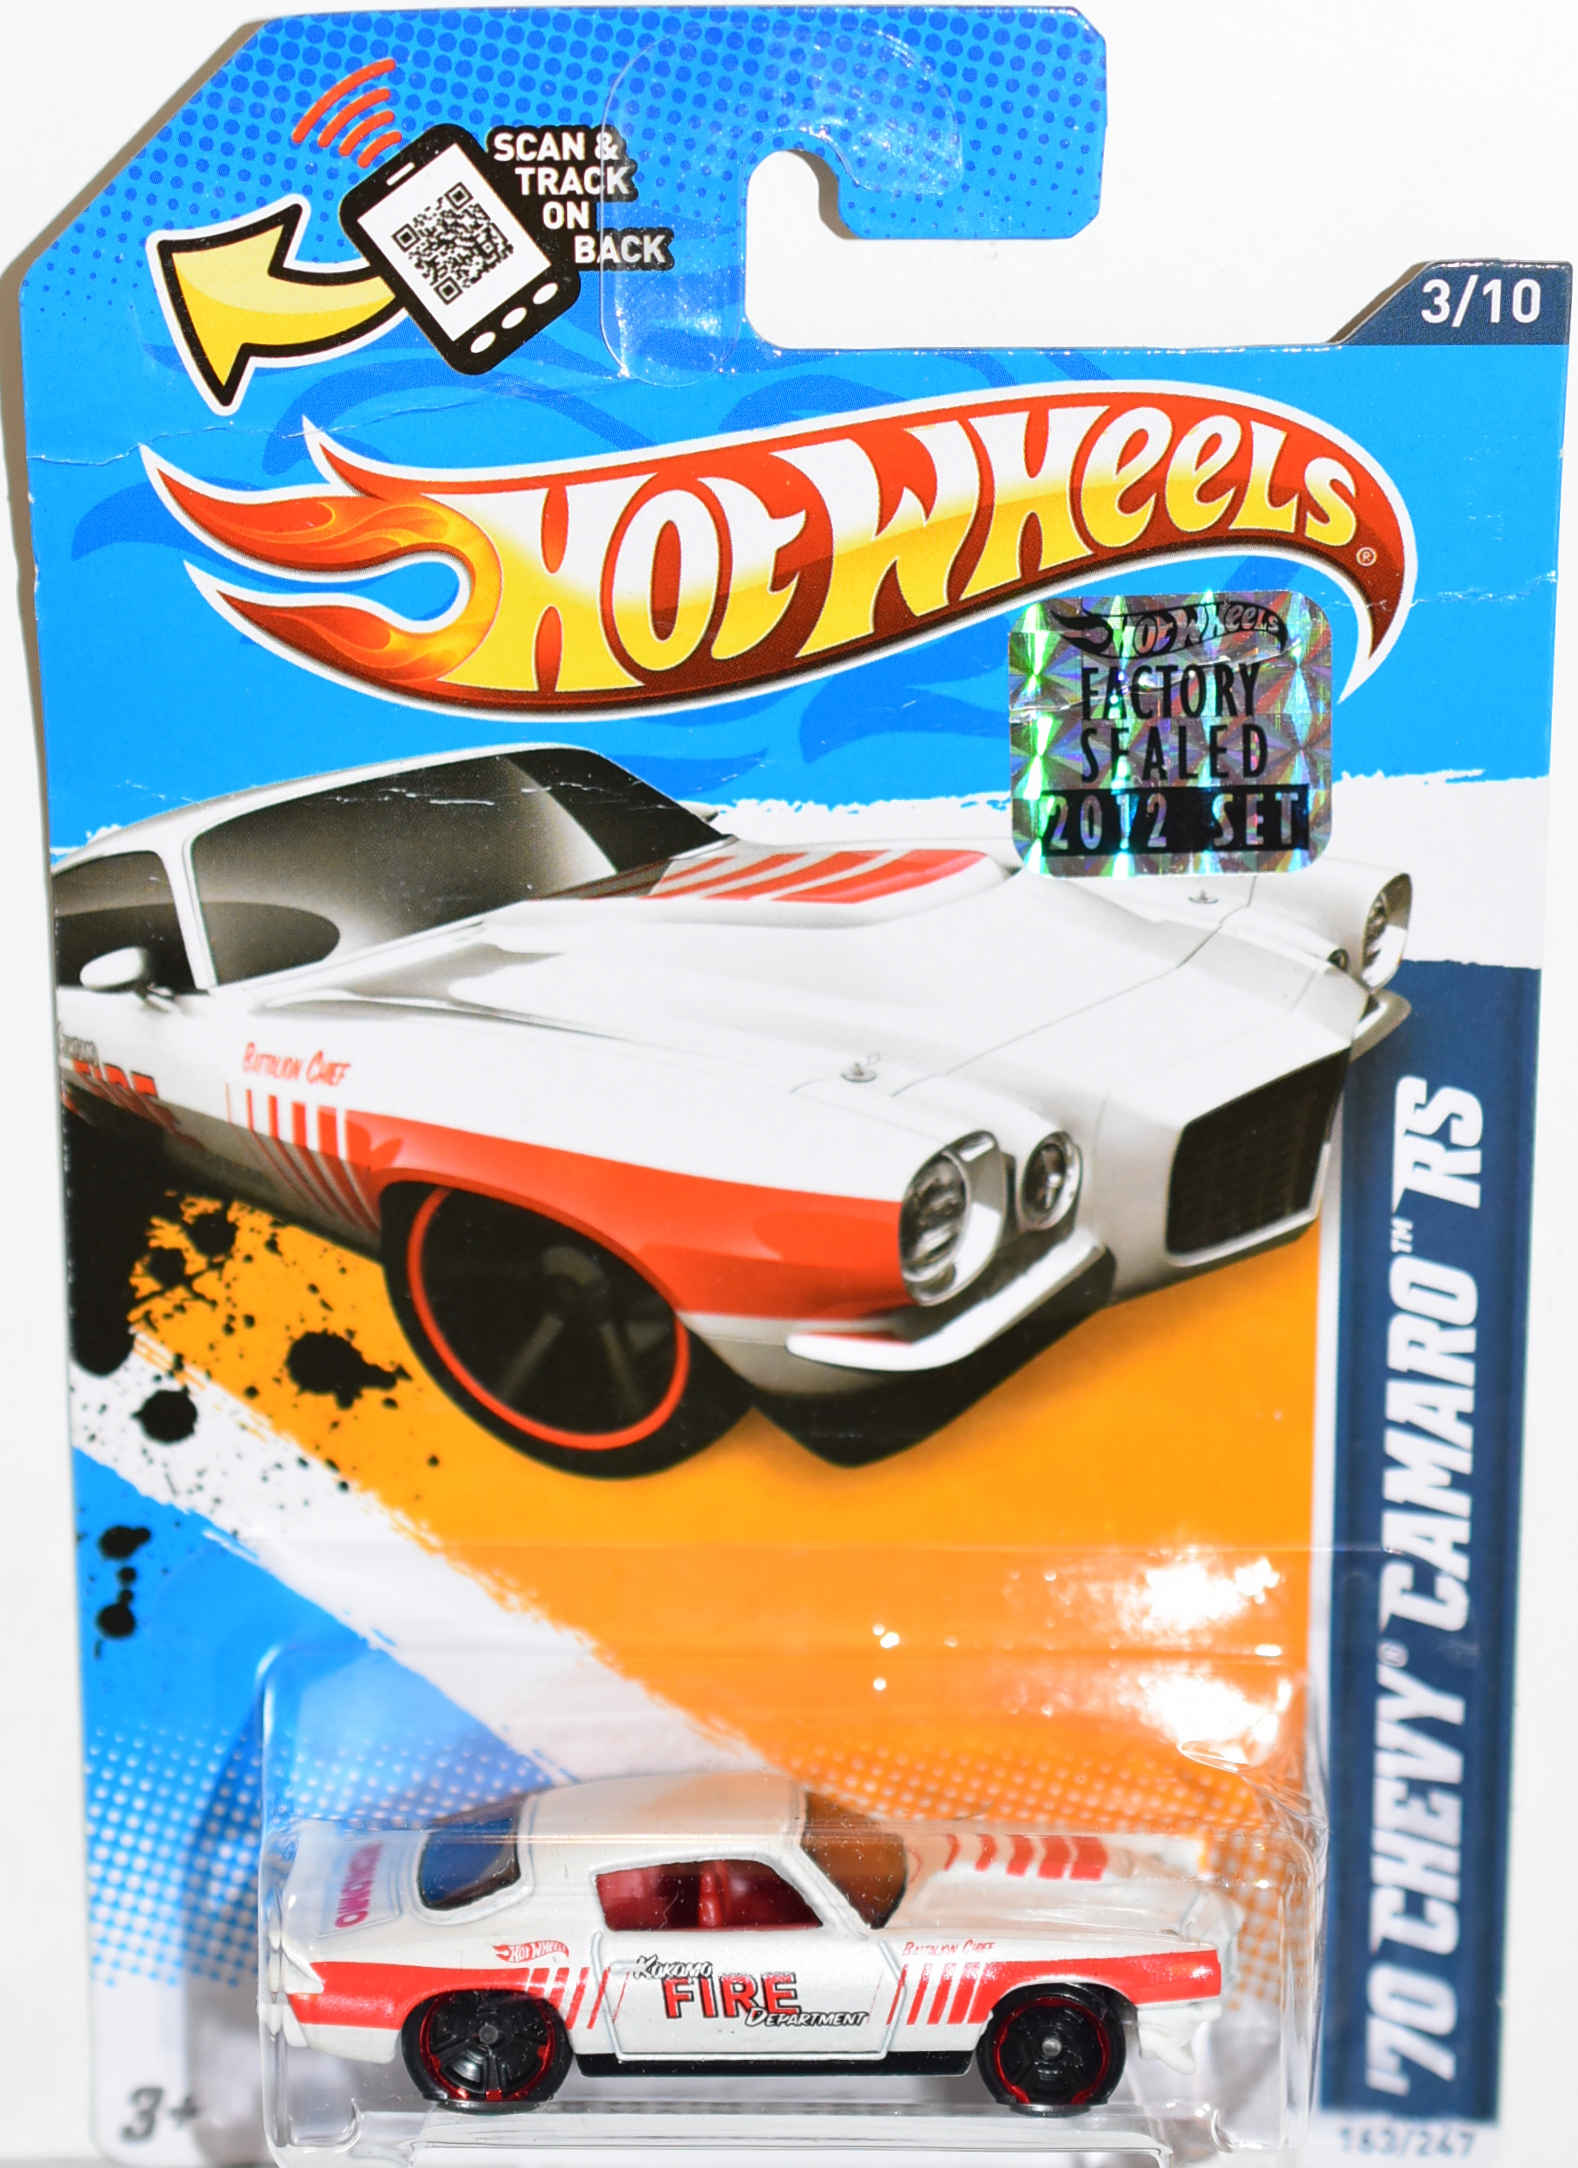 HOT WHEELS 2012 '70 CHEVY CAMARO SS FACTORY SEALED